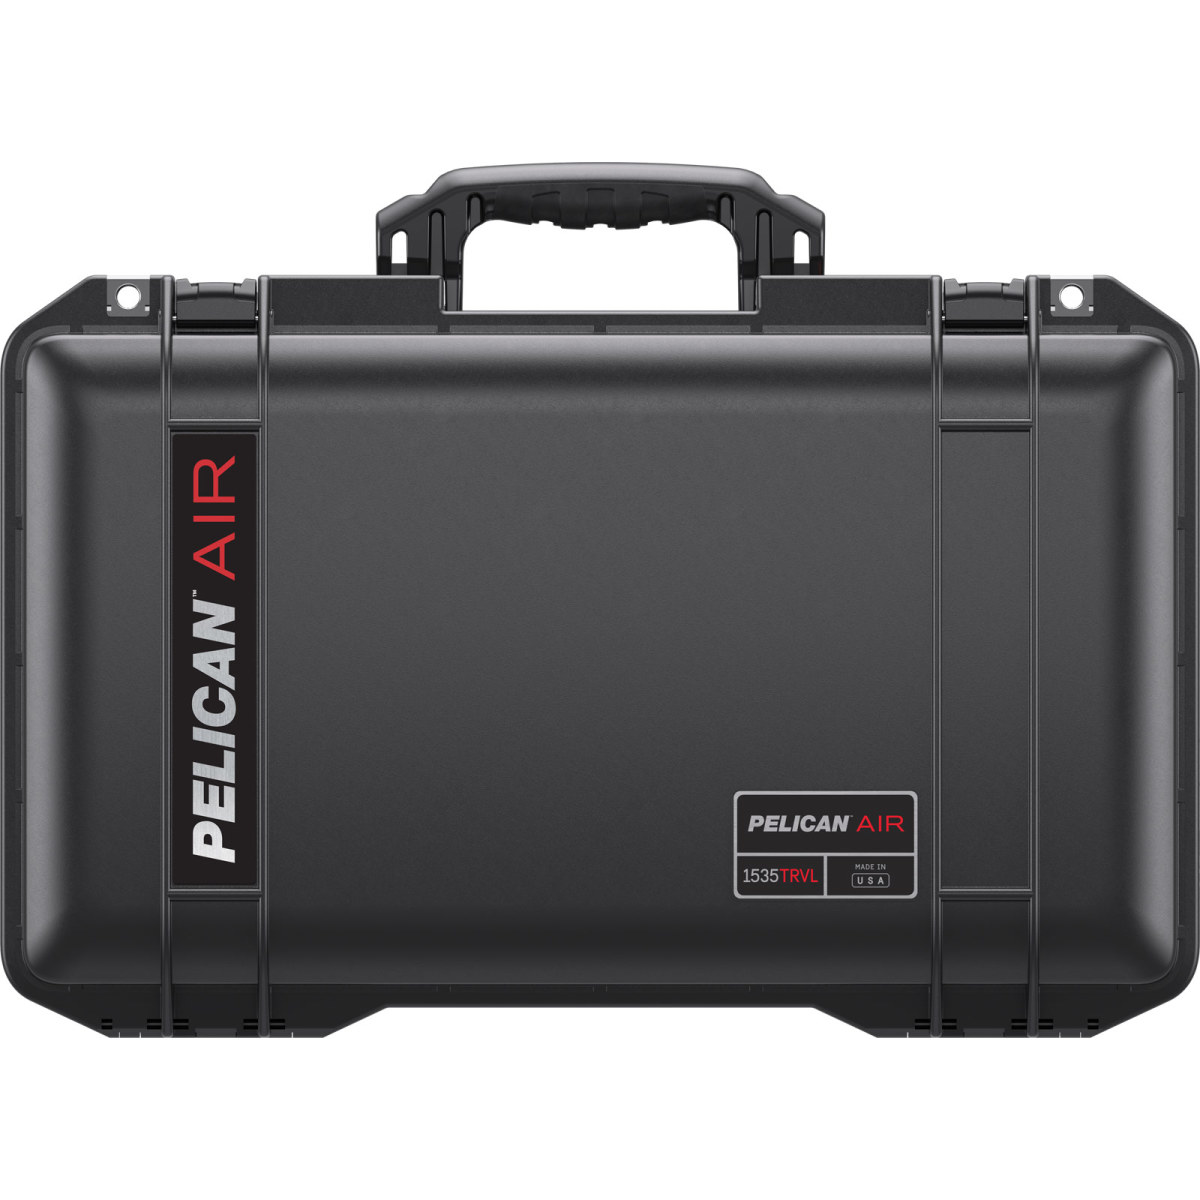 Pelican Air Travel Case